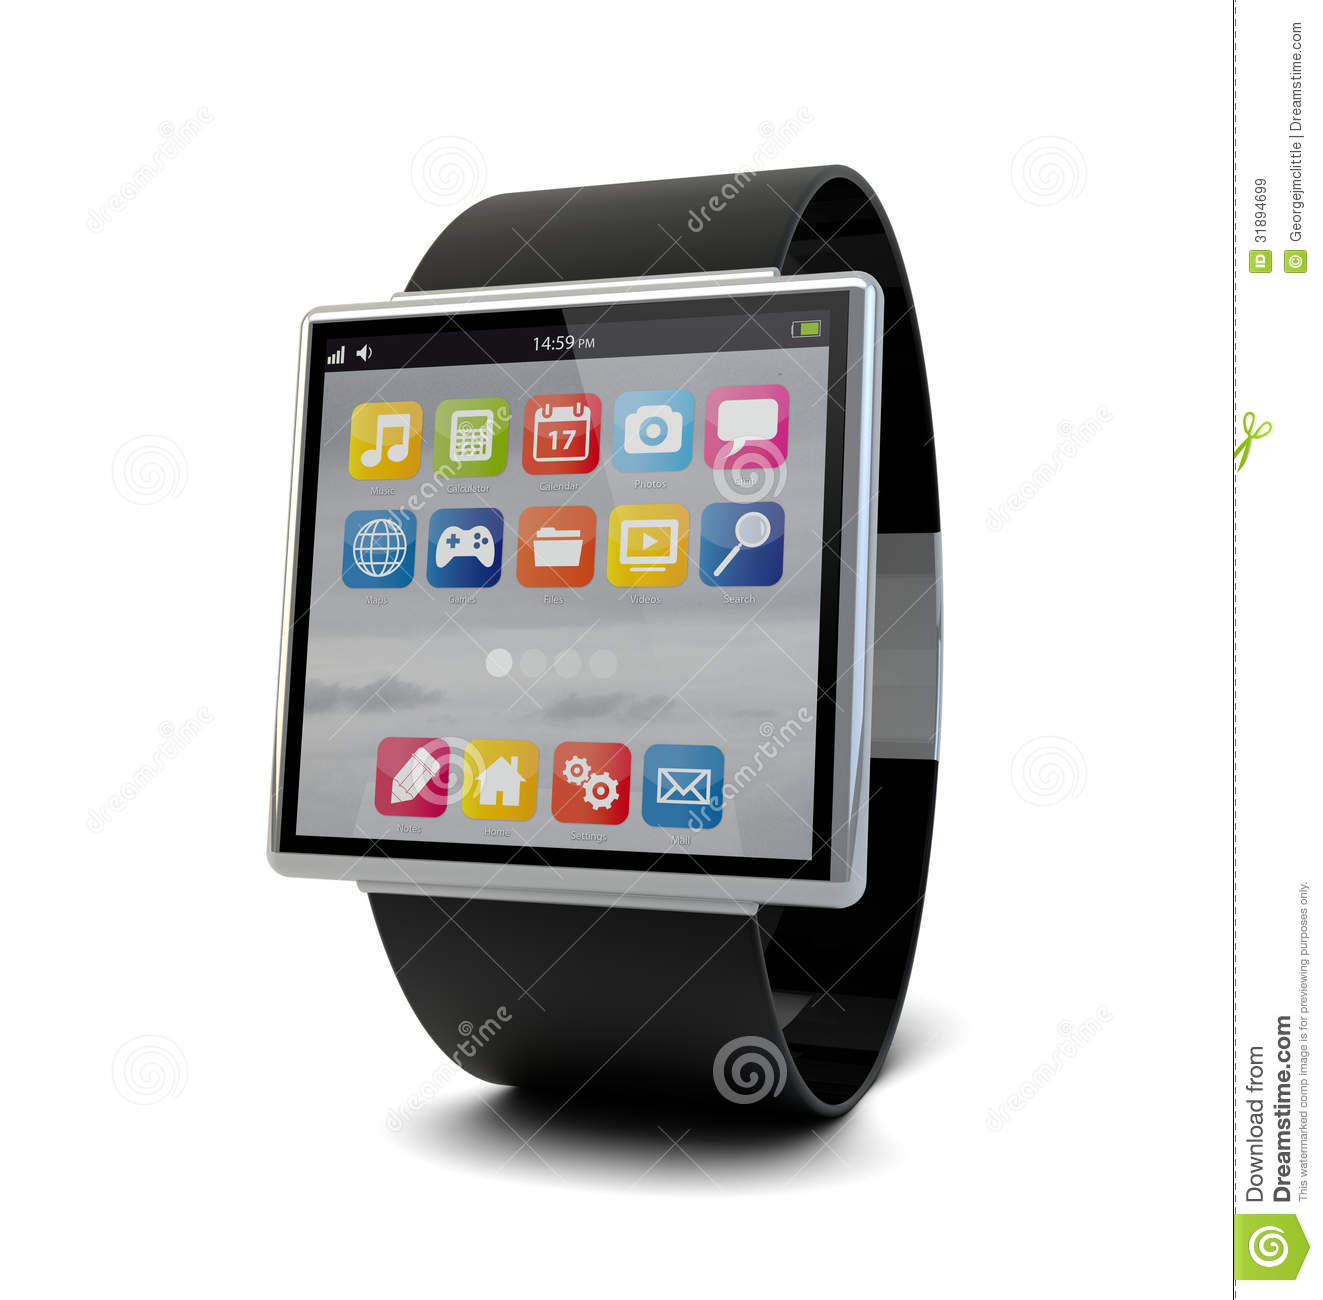 Smart Watch Royalty Free Stock Images - Image: 31894699